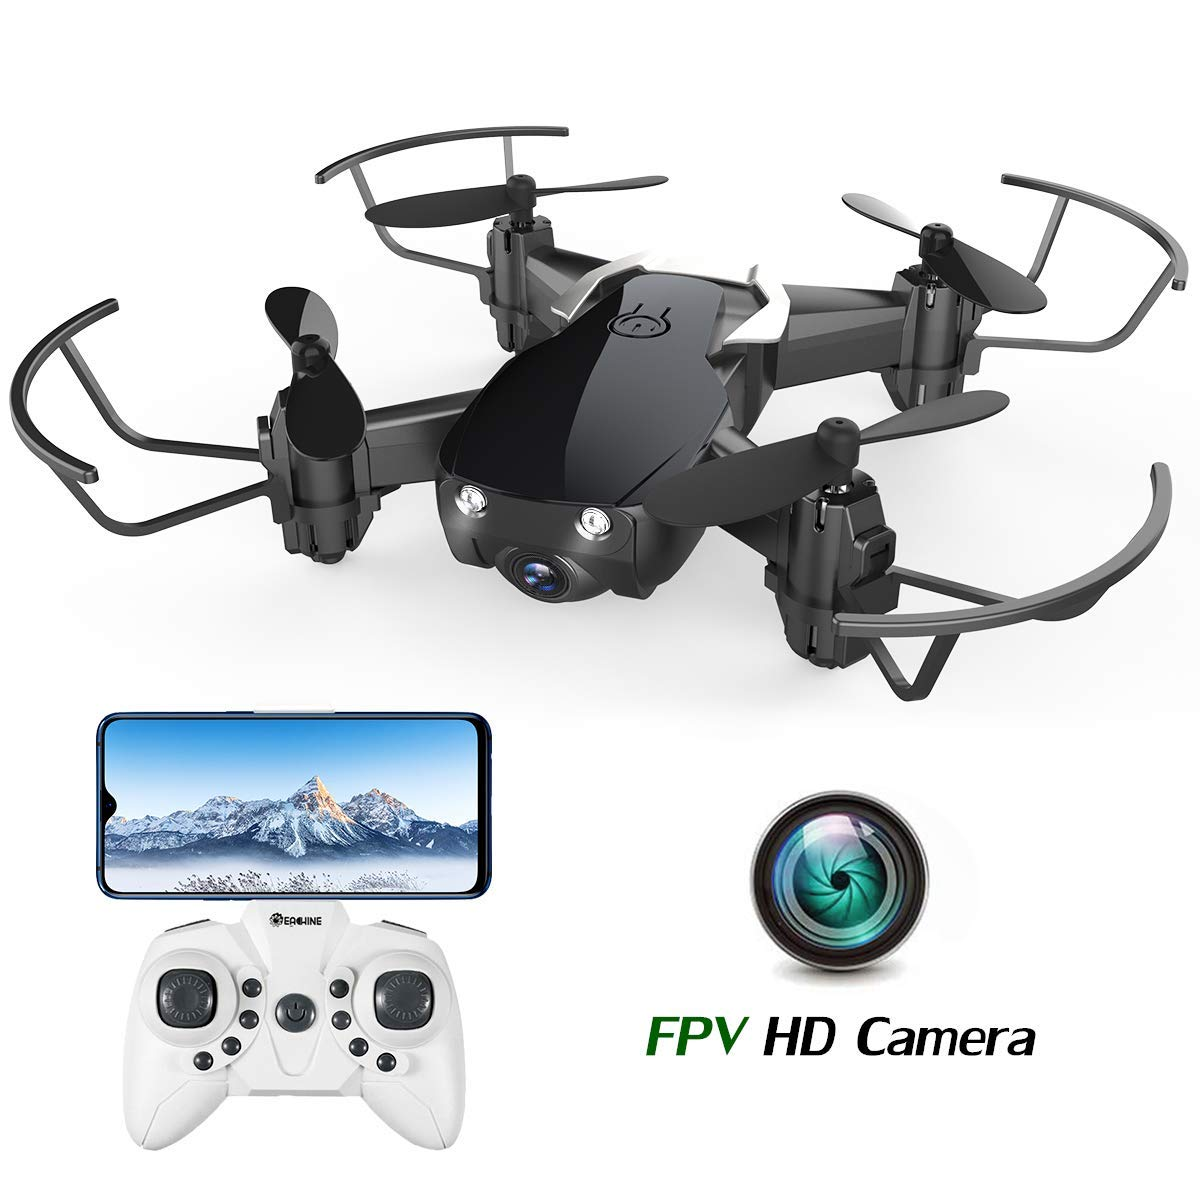 Mini Drone with Camera for Kids and Adults, EACHINE E61HW WiFi FPV Quadcopter with HD Camera Selfie Pocket Nano Drone for Beginner RTF - Altitude Hold Mode, One Key Take Off/Landing, APP Control by EACHINE